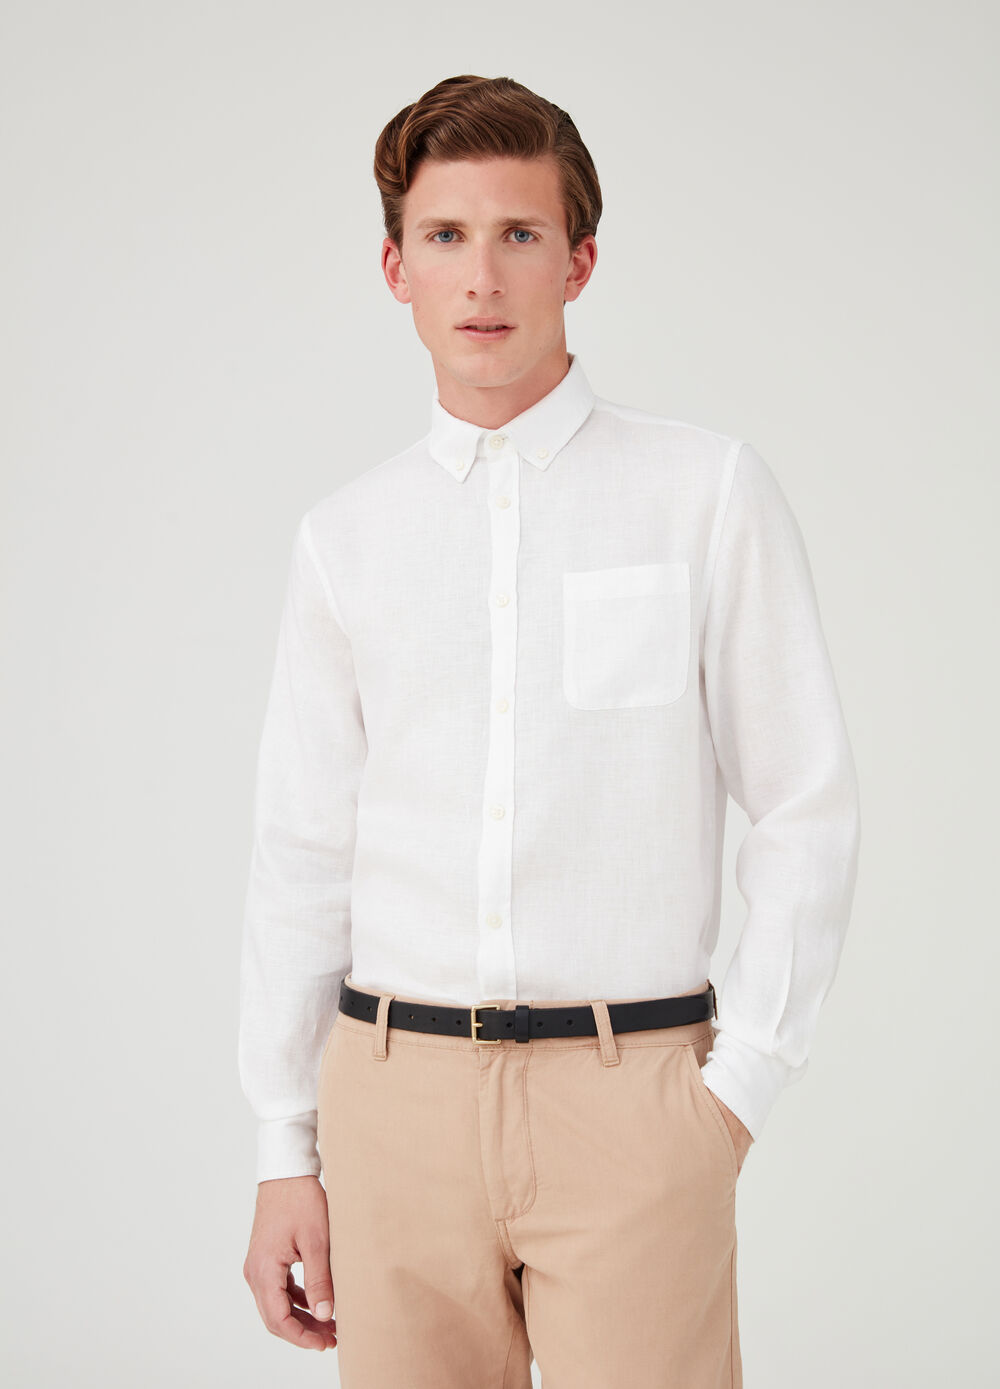 Poplin shirt with cutaway collar